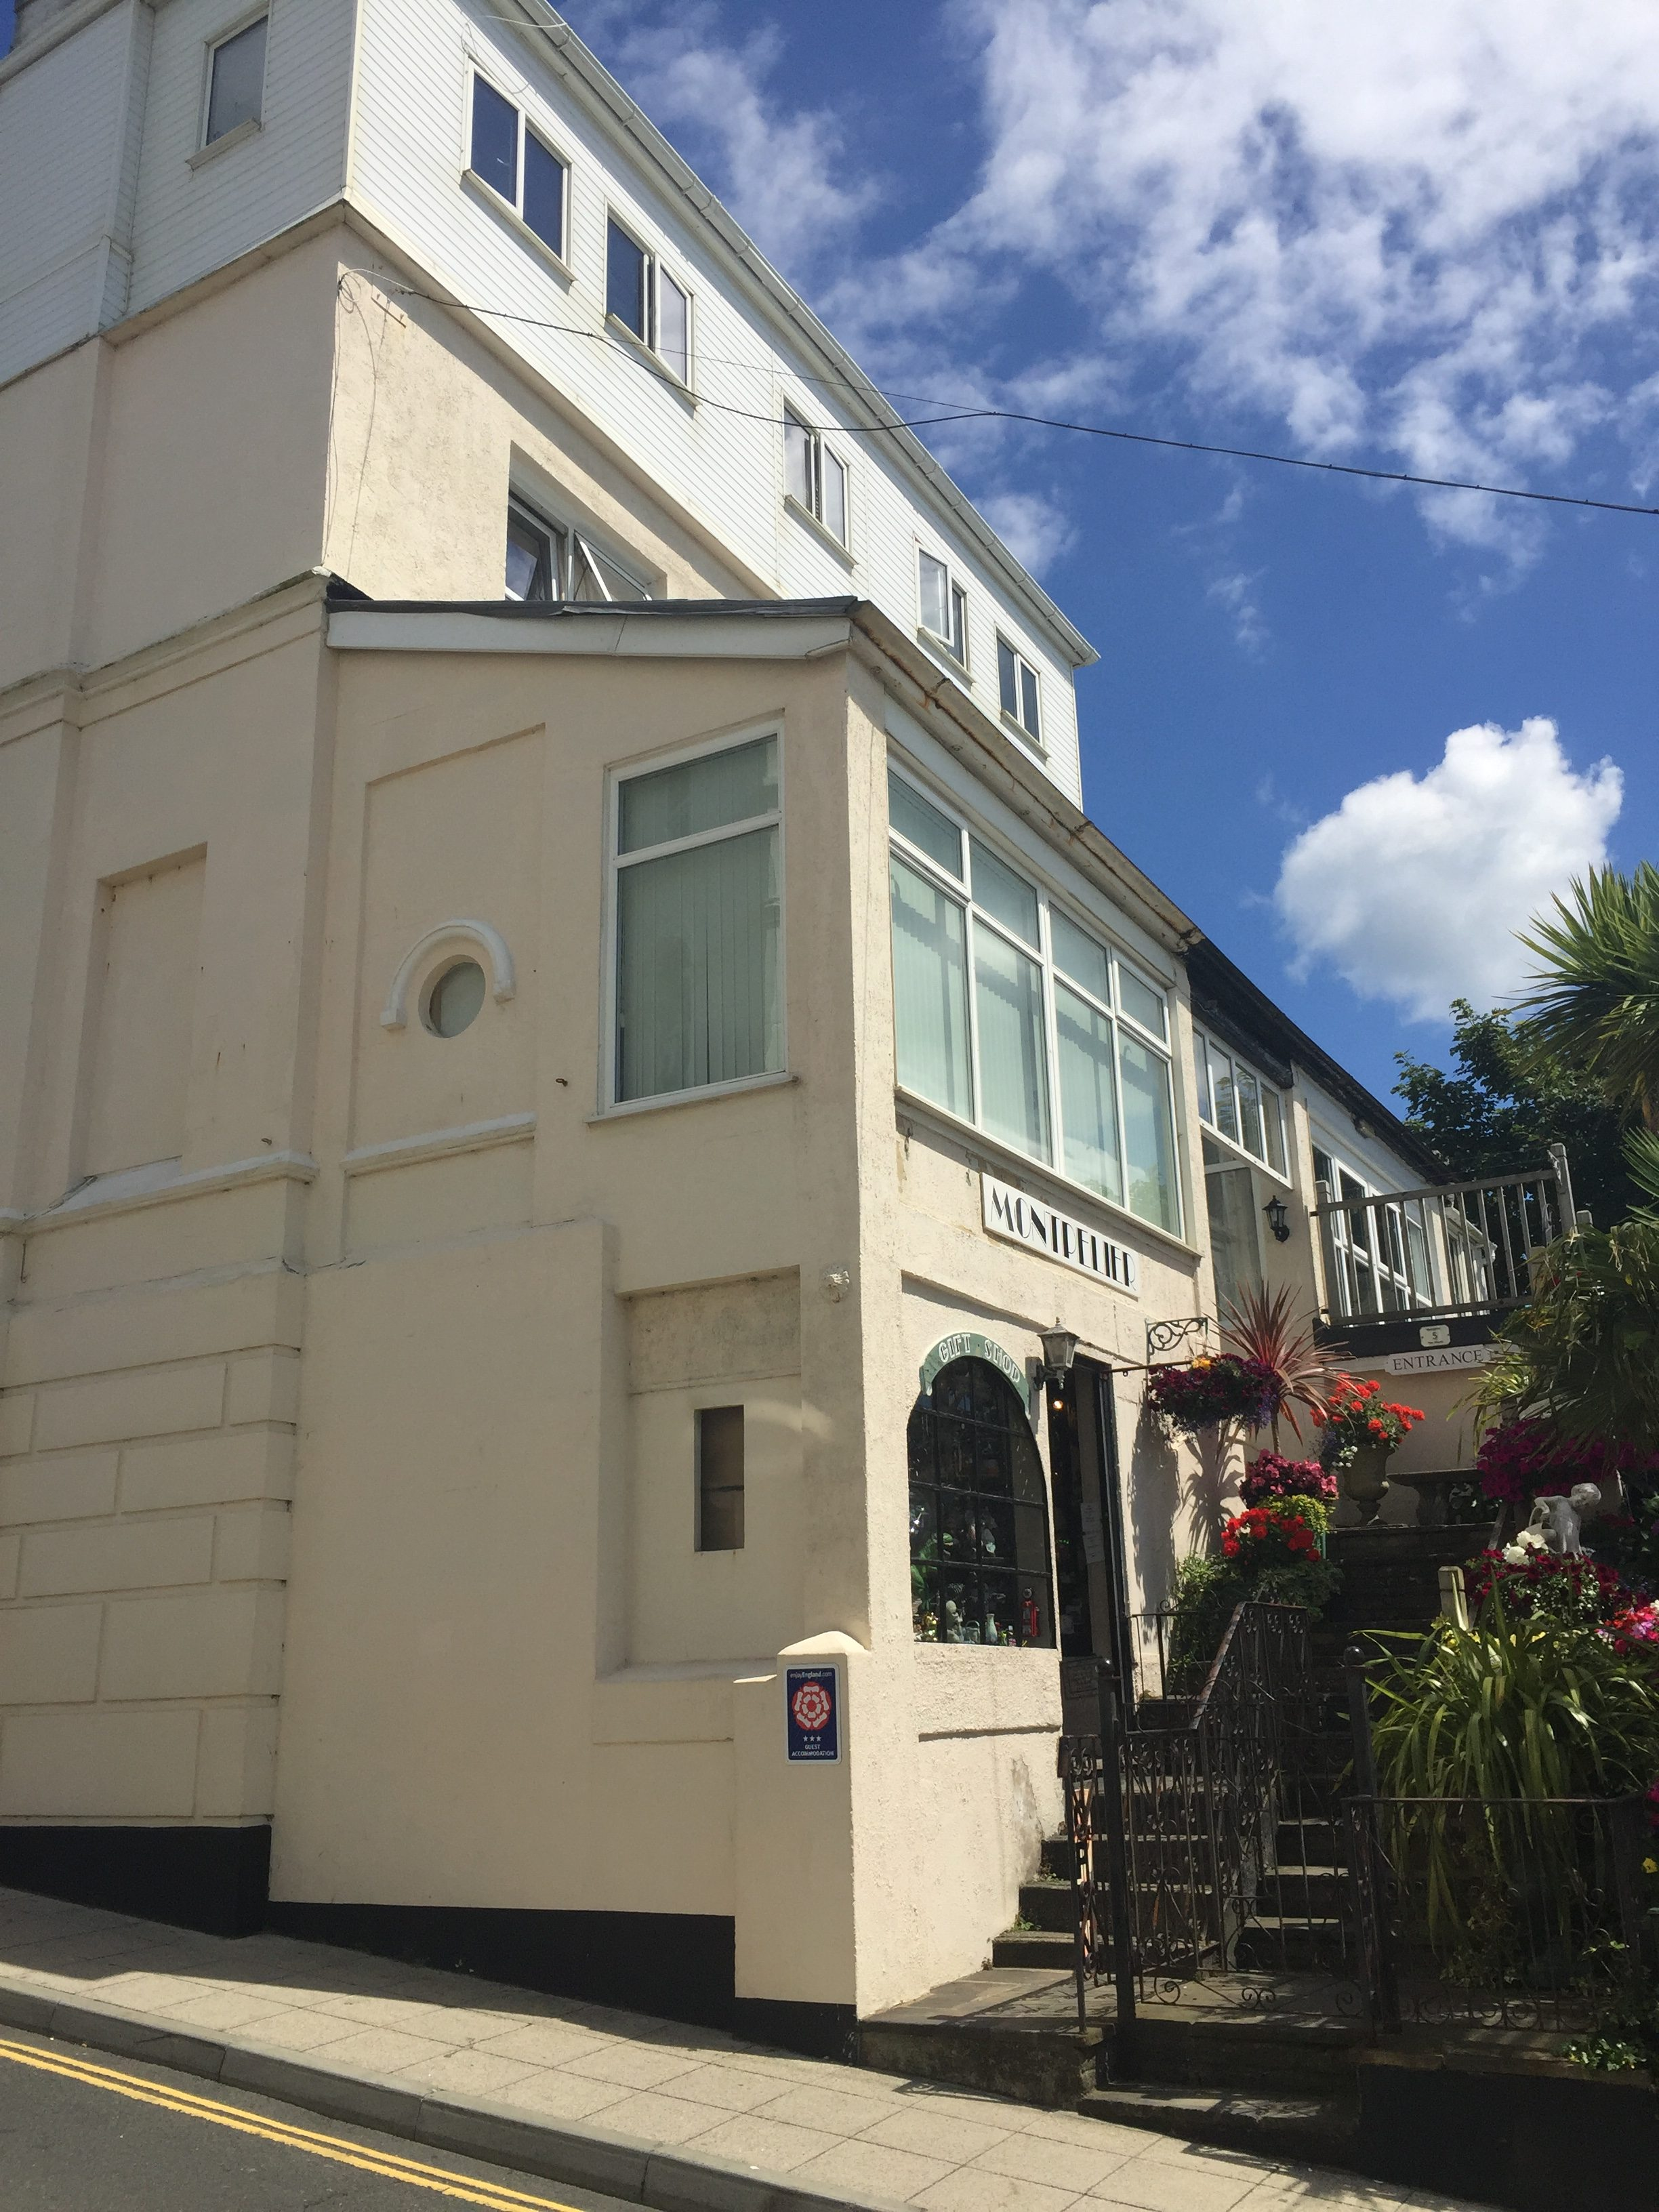 Cheap Bed And Breakfast Shanklin Isle Of Wight